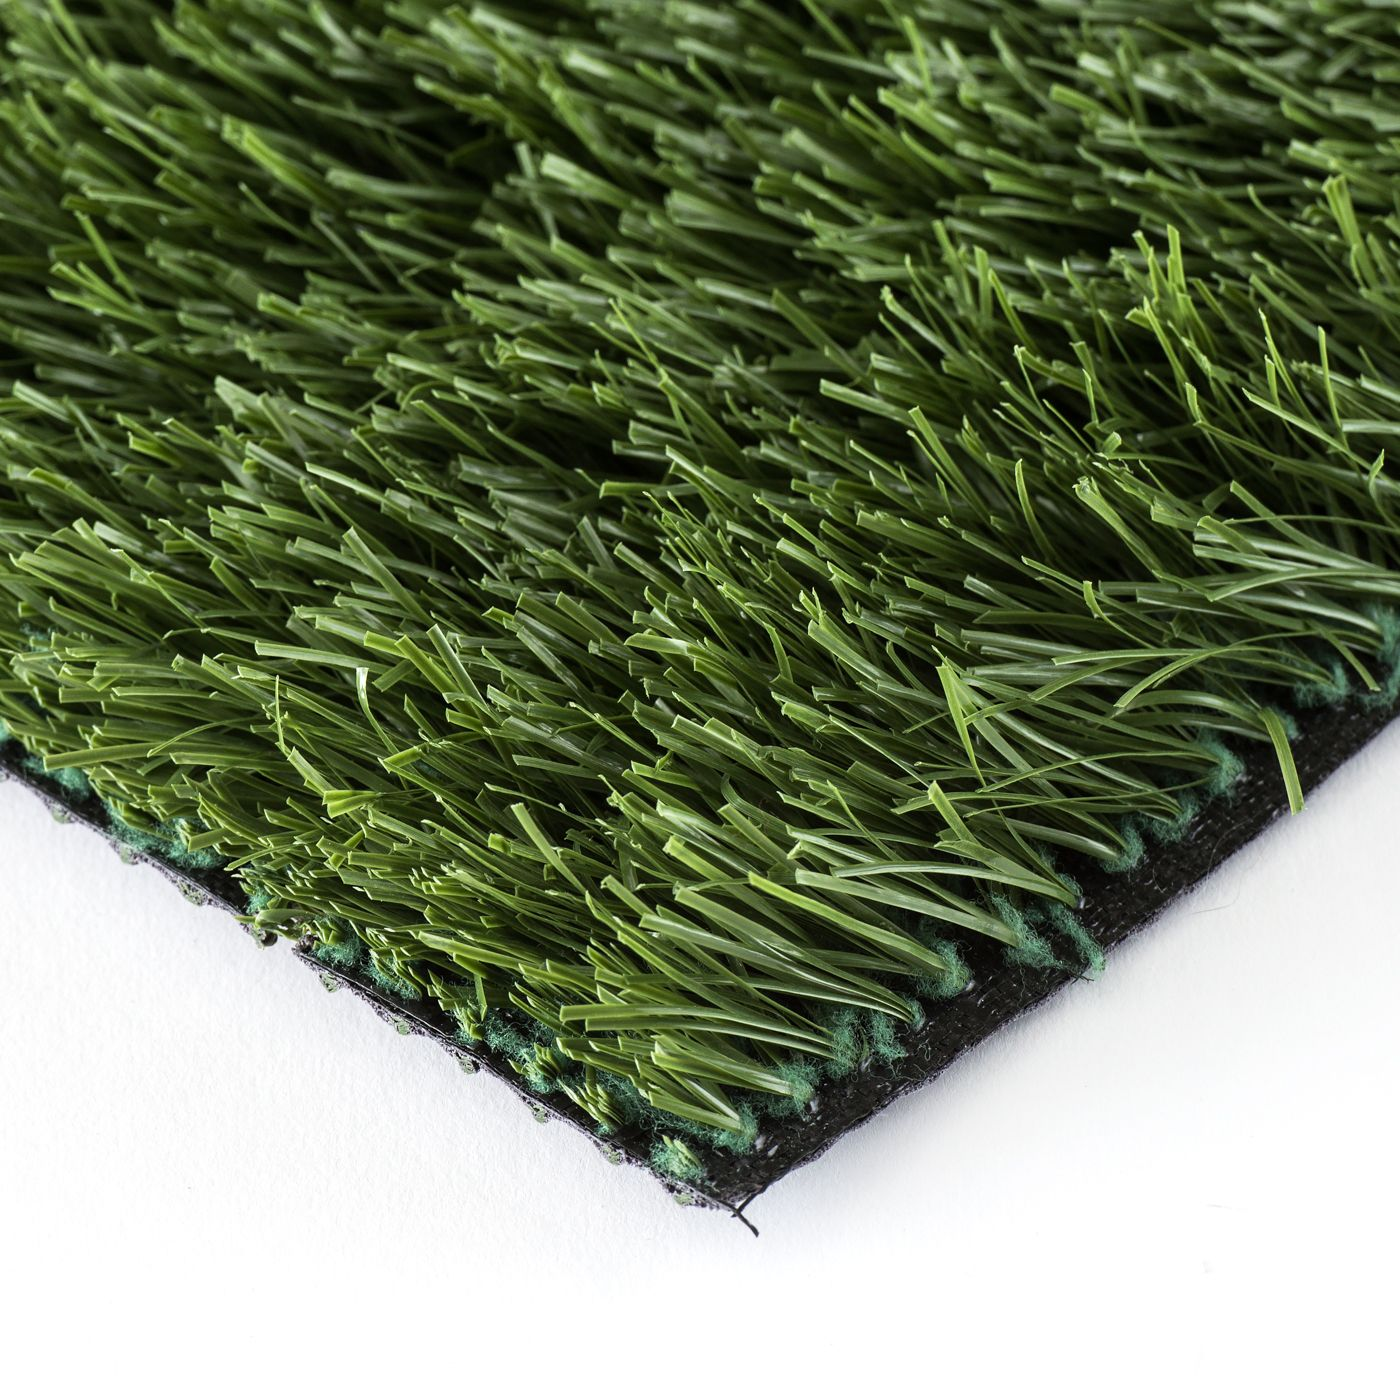 Tfd Sport Field Special Sport Facility Turf Factory Direct Sports Turf How To Dry Basil Turf